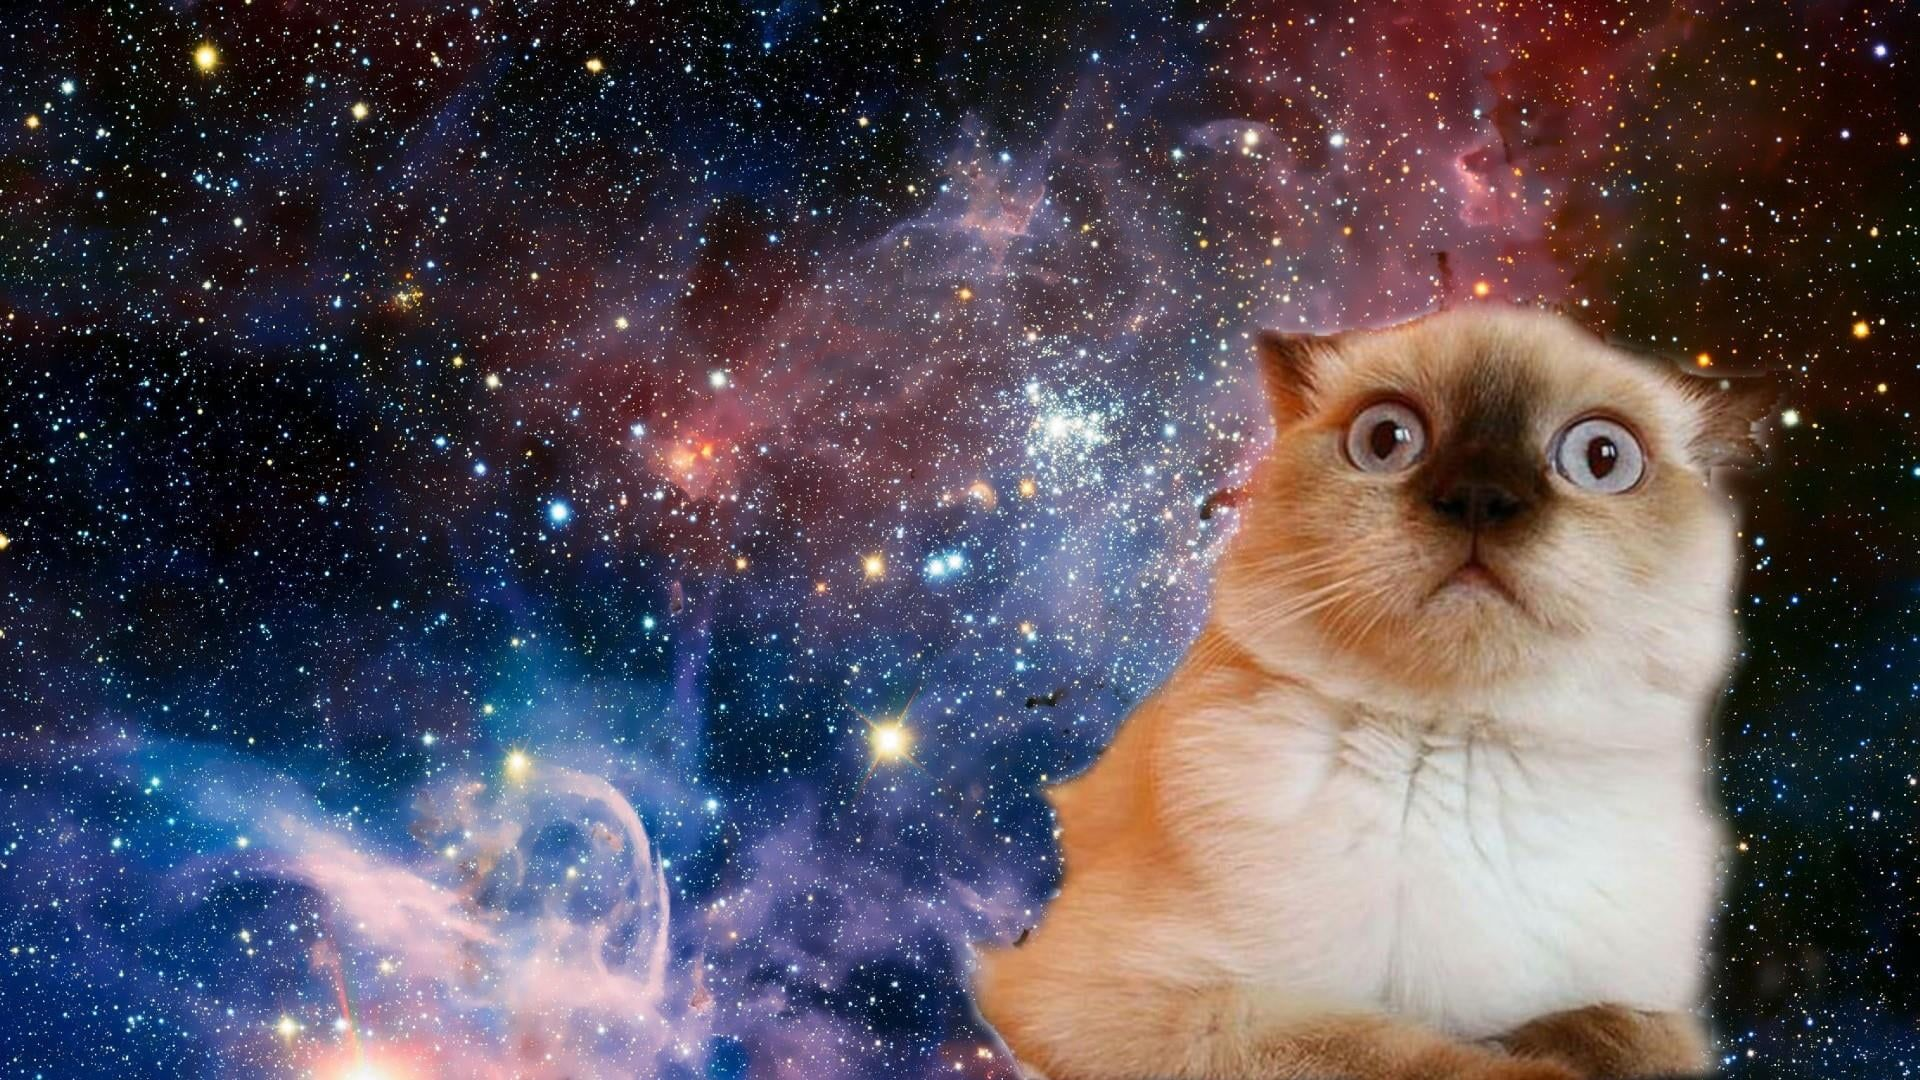 Cat Space Funny Confused Face Stars 1080p Wallpaper Hdwallpaper Desktop Cat Wallpaper Funny Cat Wallpaper Funny Wallpapers